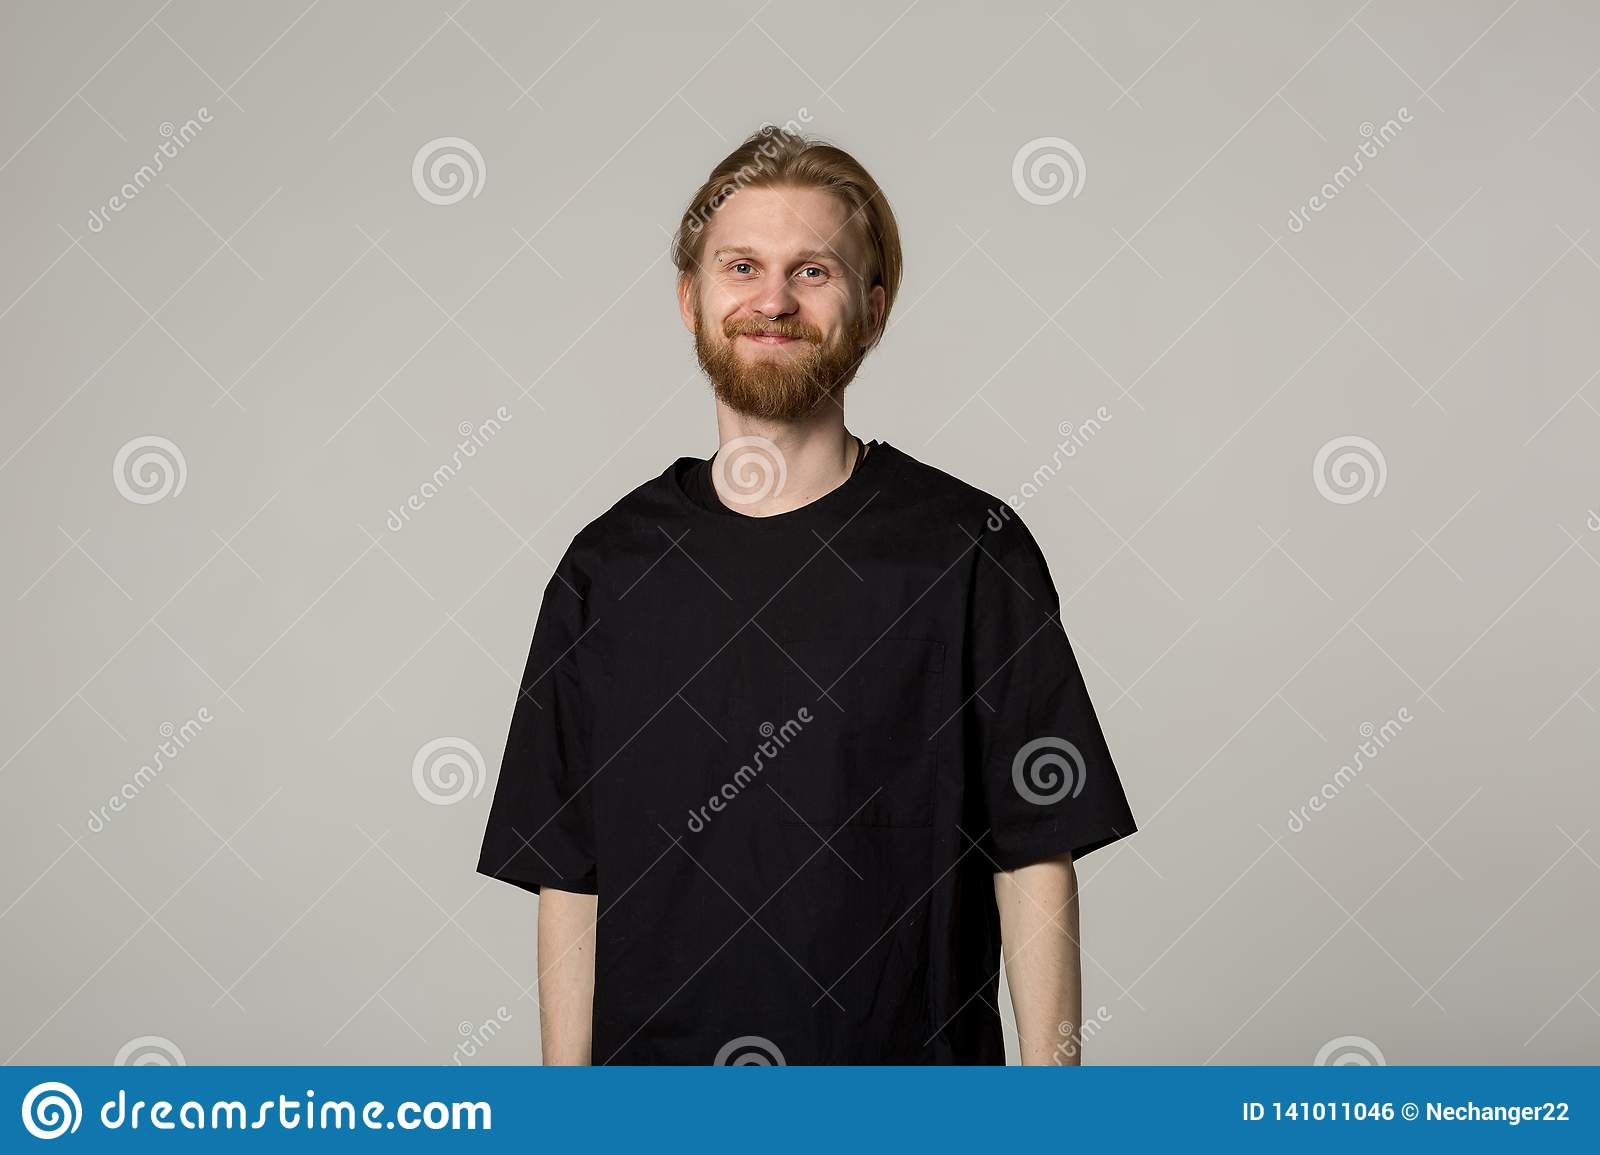 Smiling young man with beard in black shirt